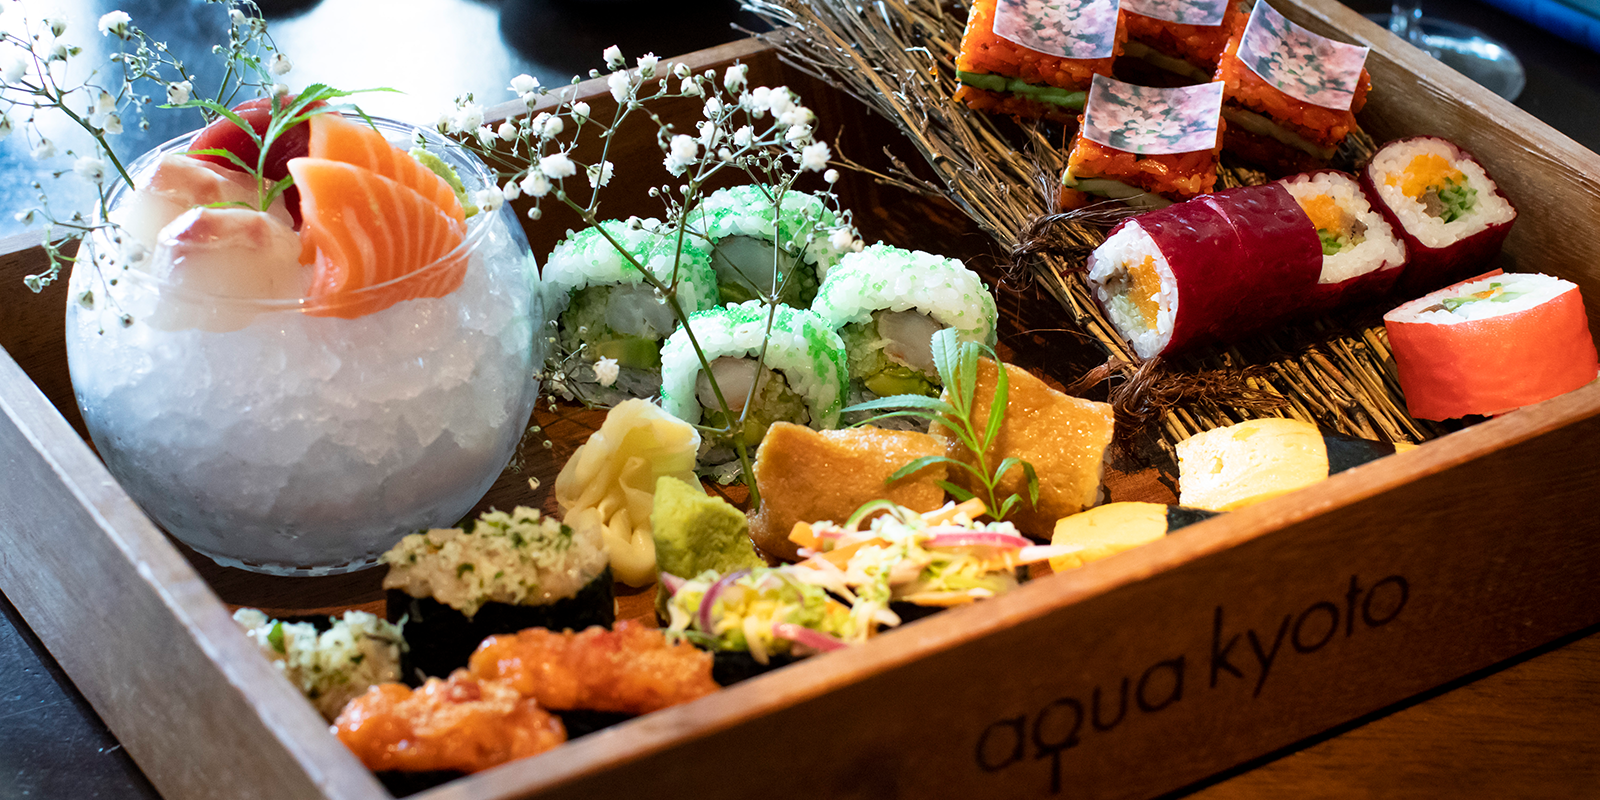 Sunday Brunch at Aqua Kyoto